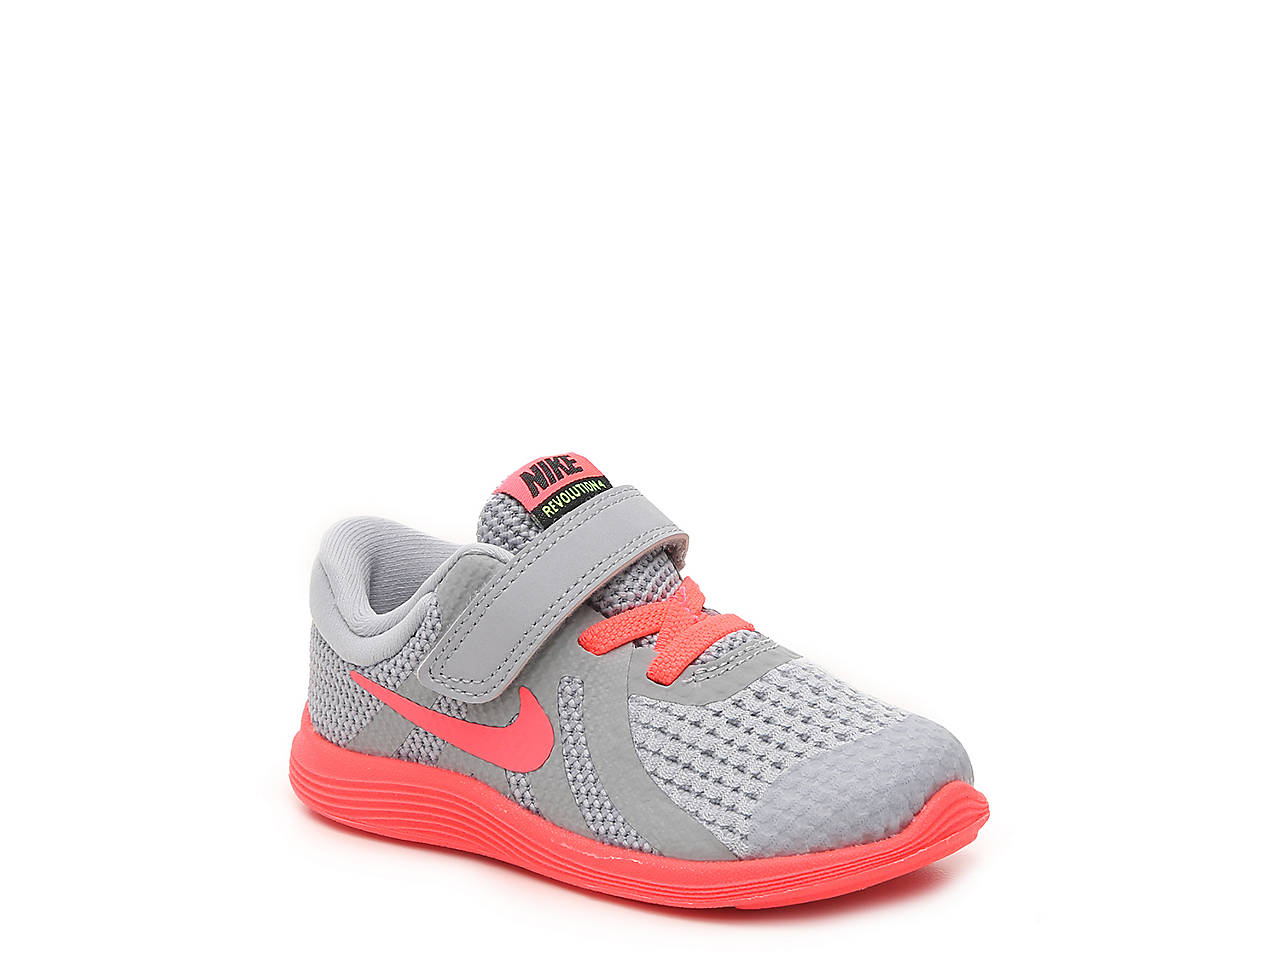 ac9f67a5a0c16 Nike Revolution 4 Fade Toddler Sneaker Kids Shoes